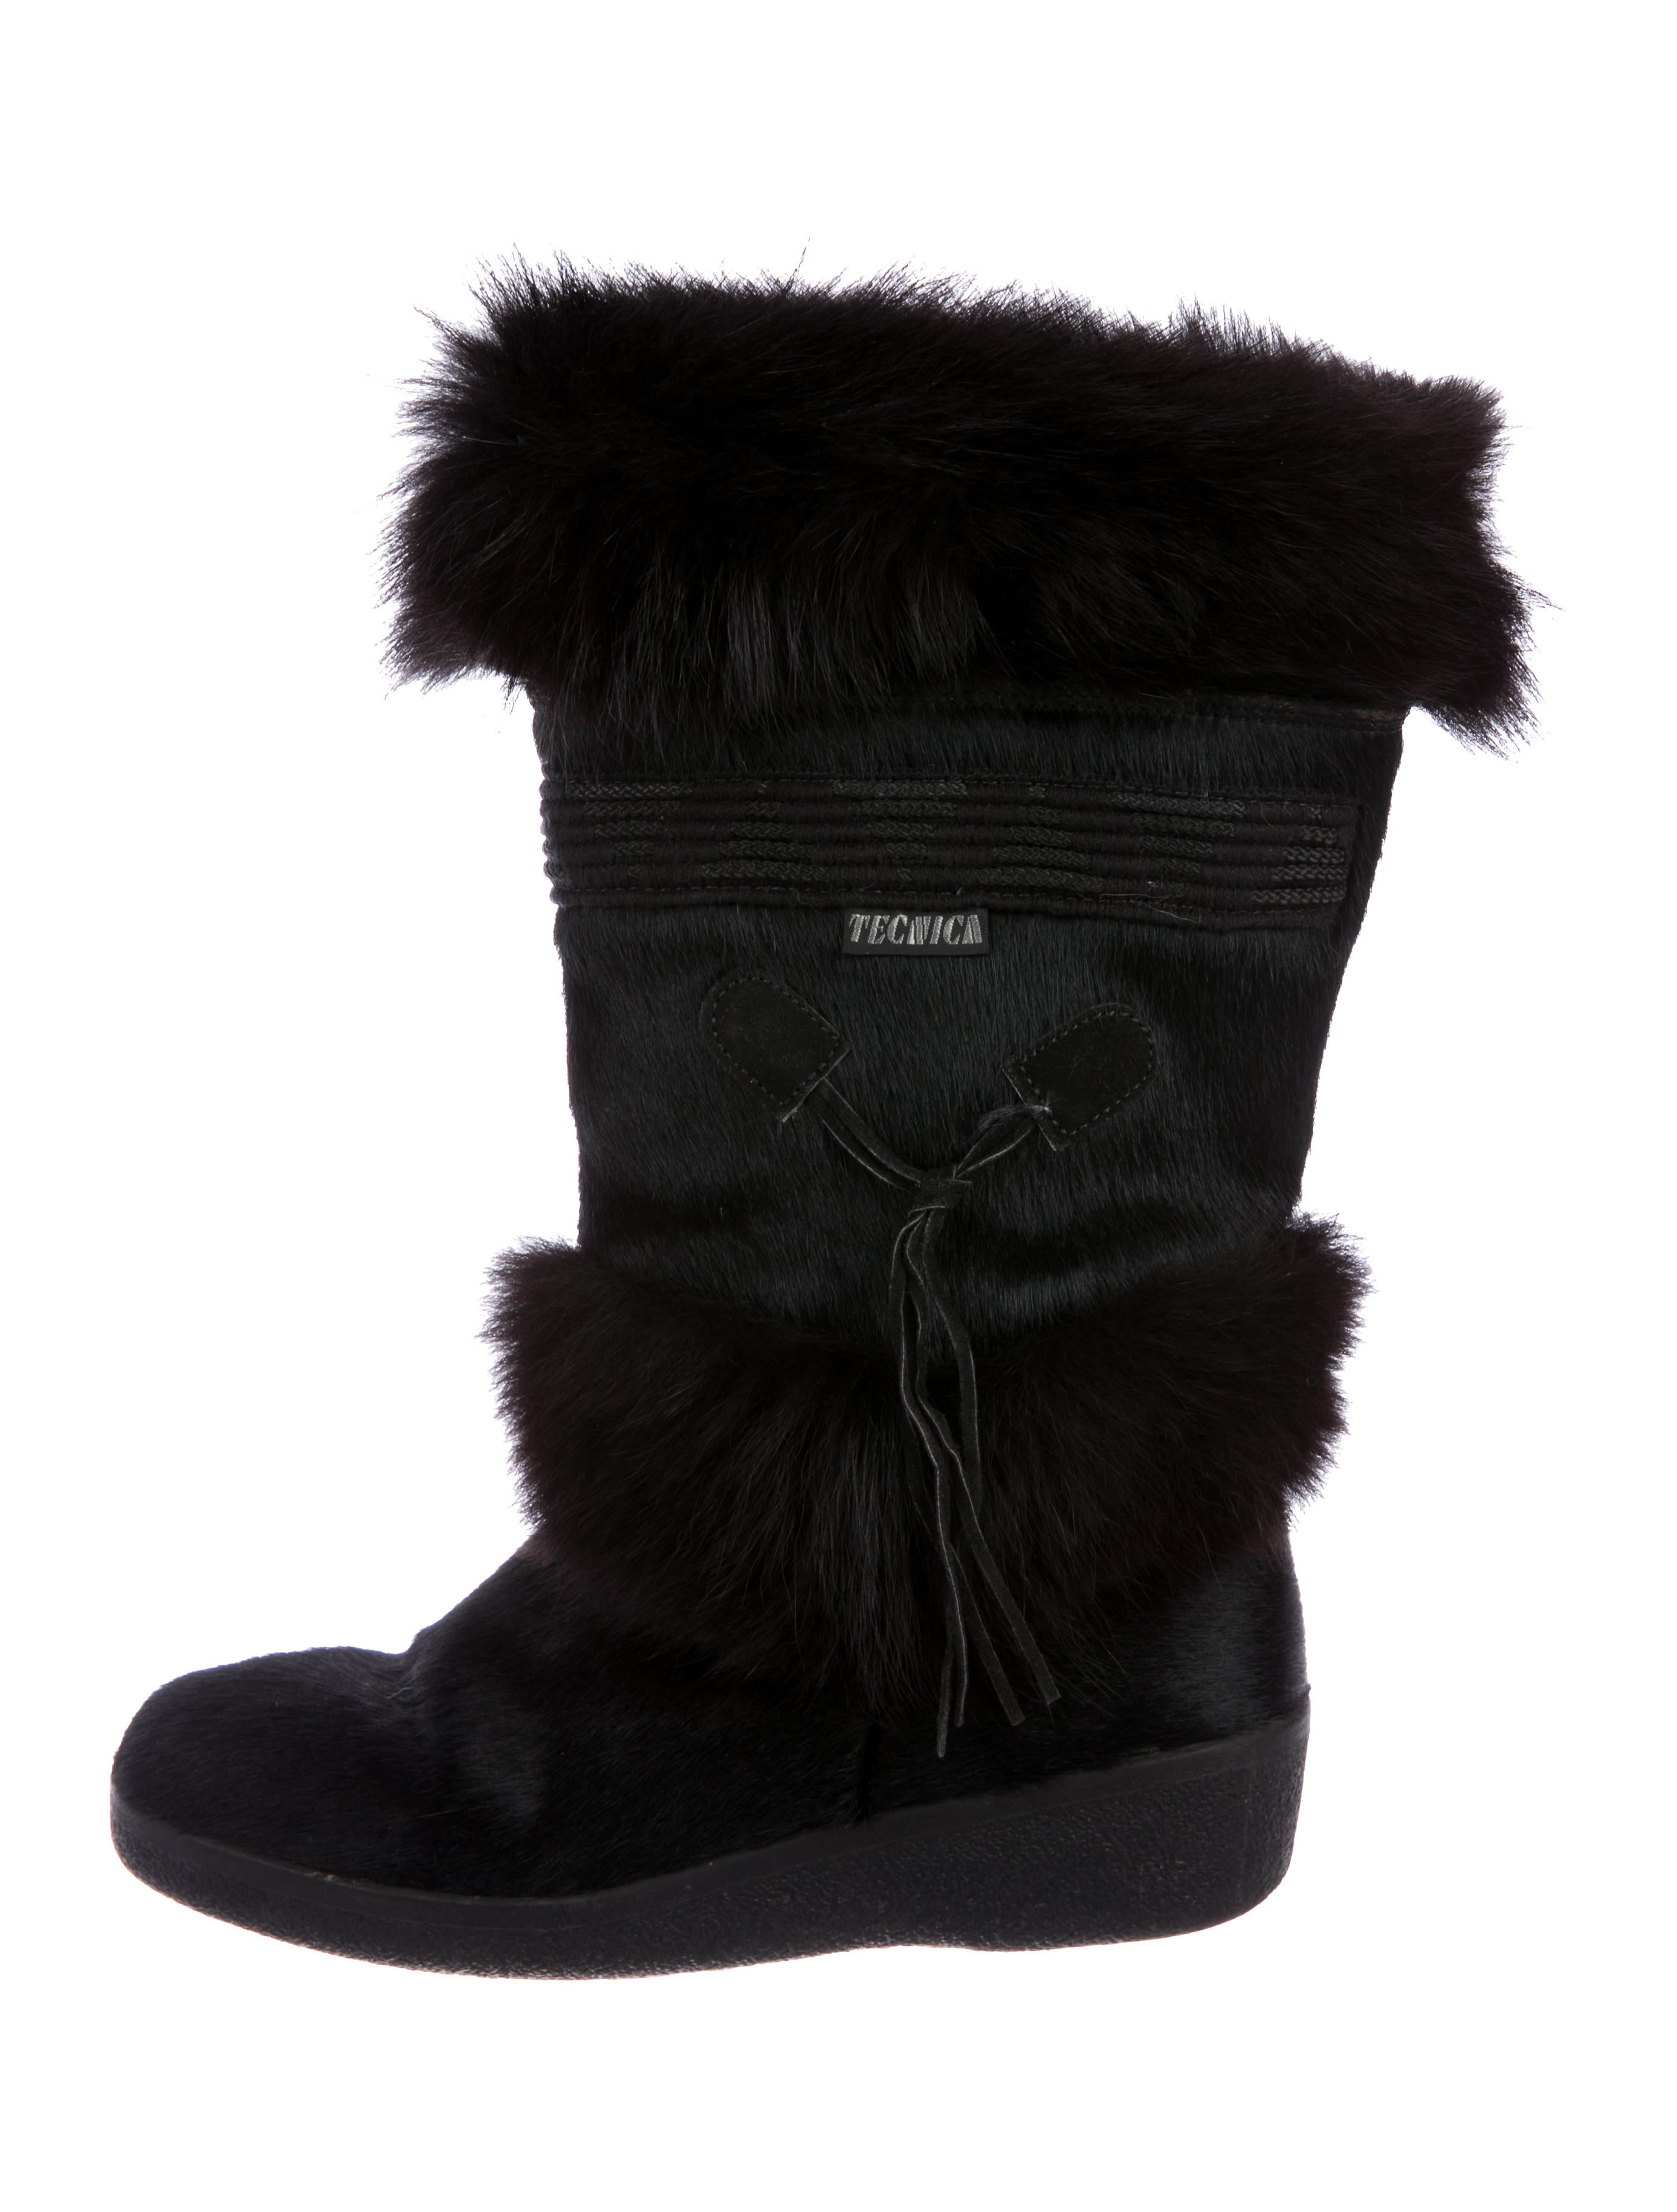 cheap best sale Tecnica Fox-Trimmed Ponyhair Boots amazing price for sale 2e7qie